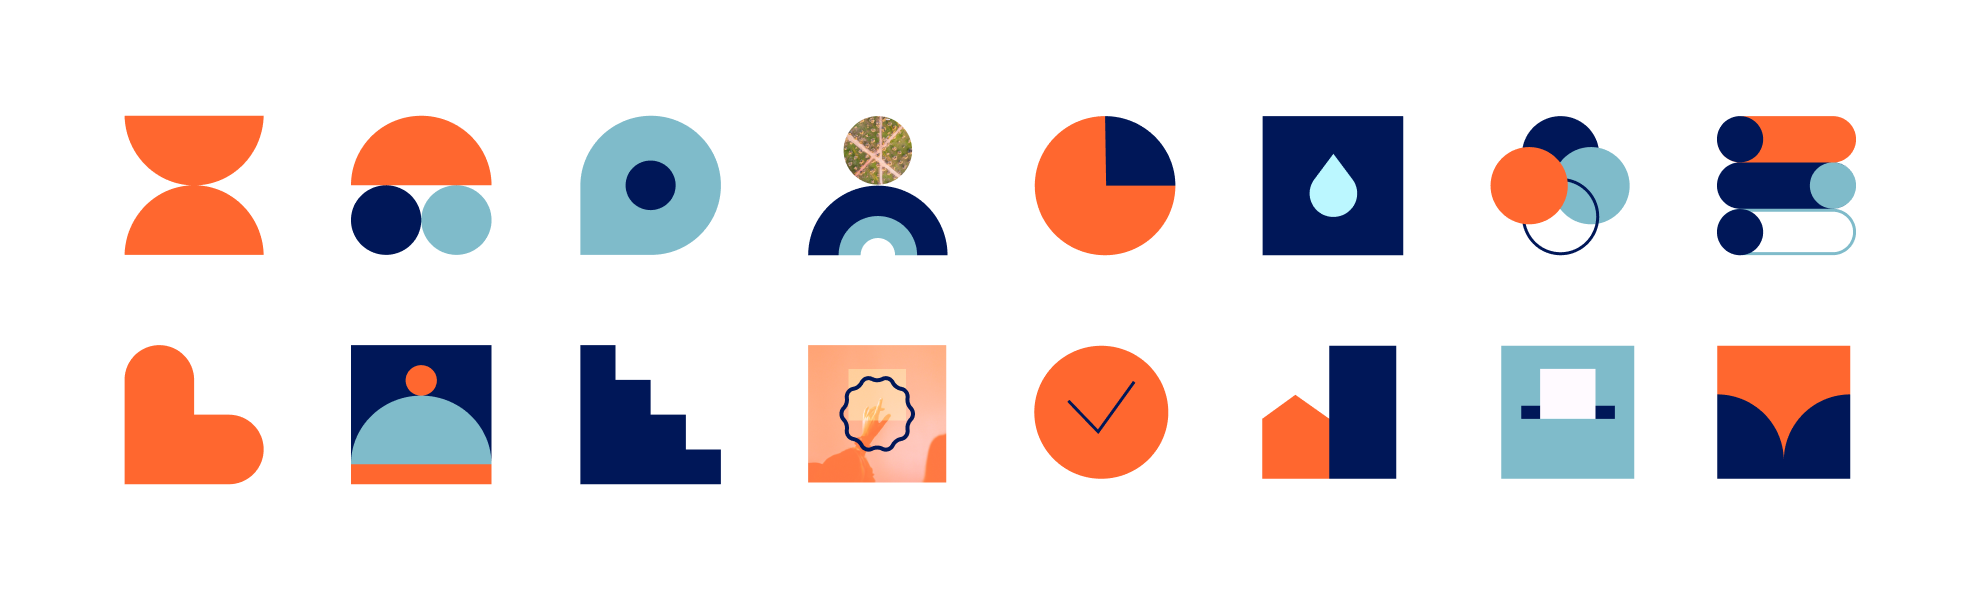 citizenlab-icons